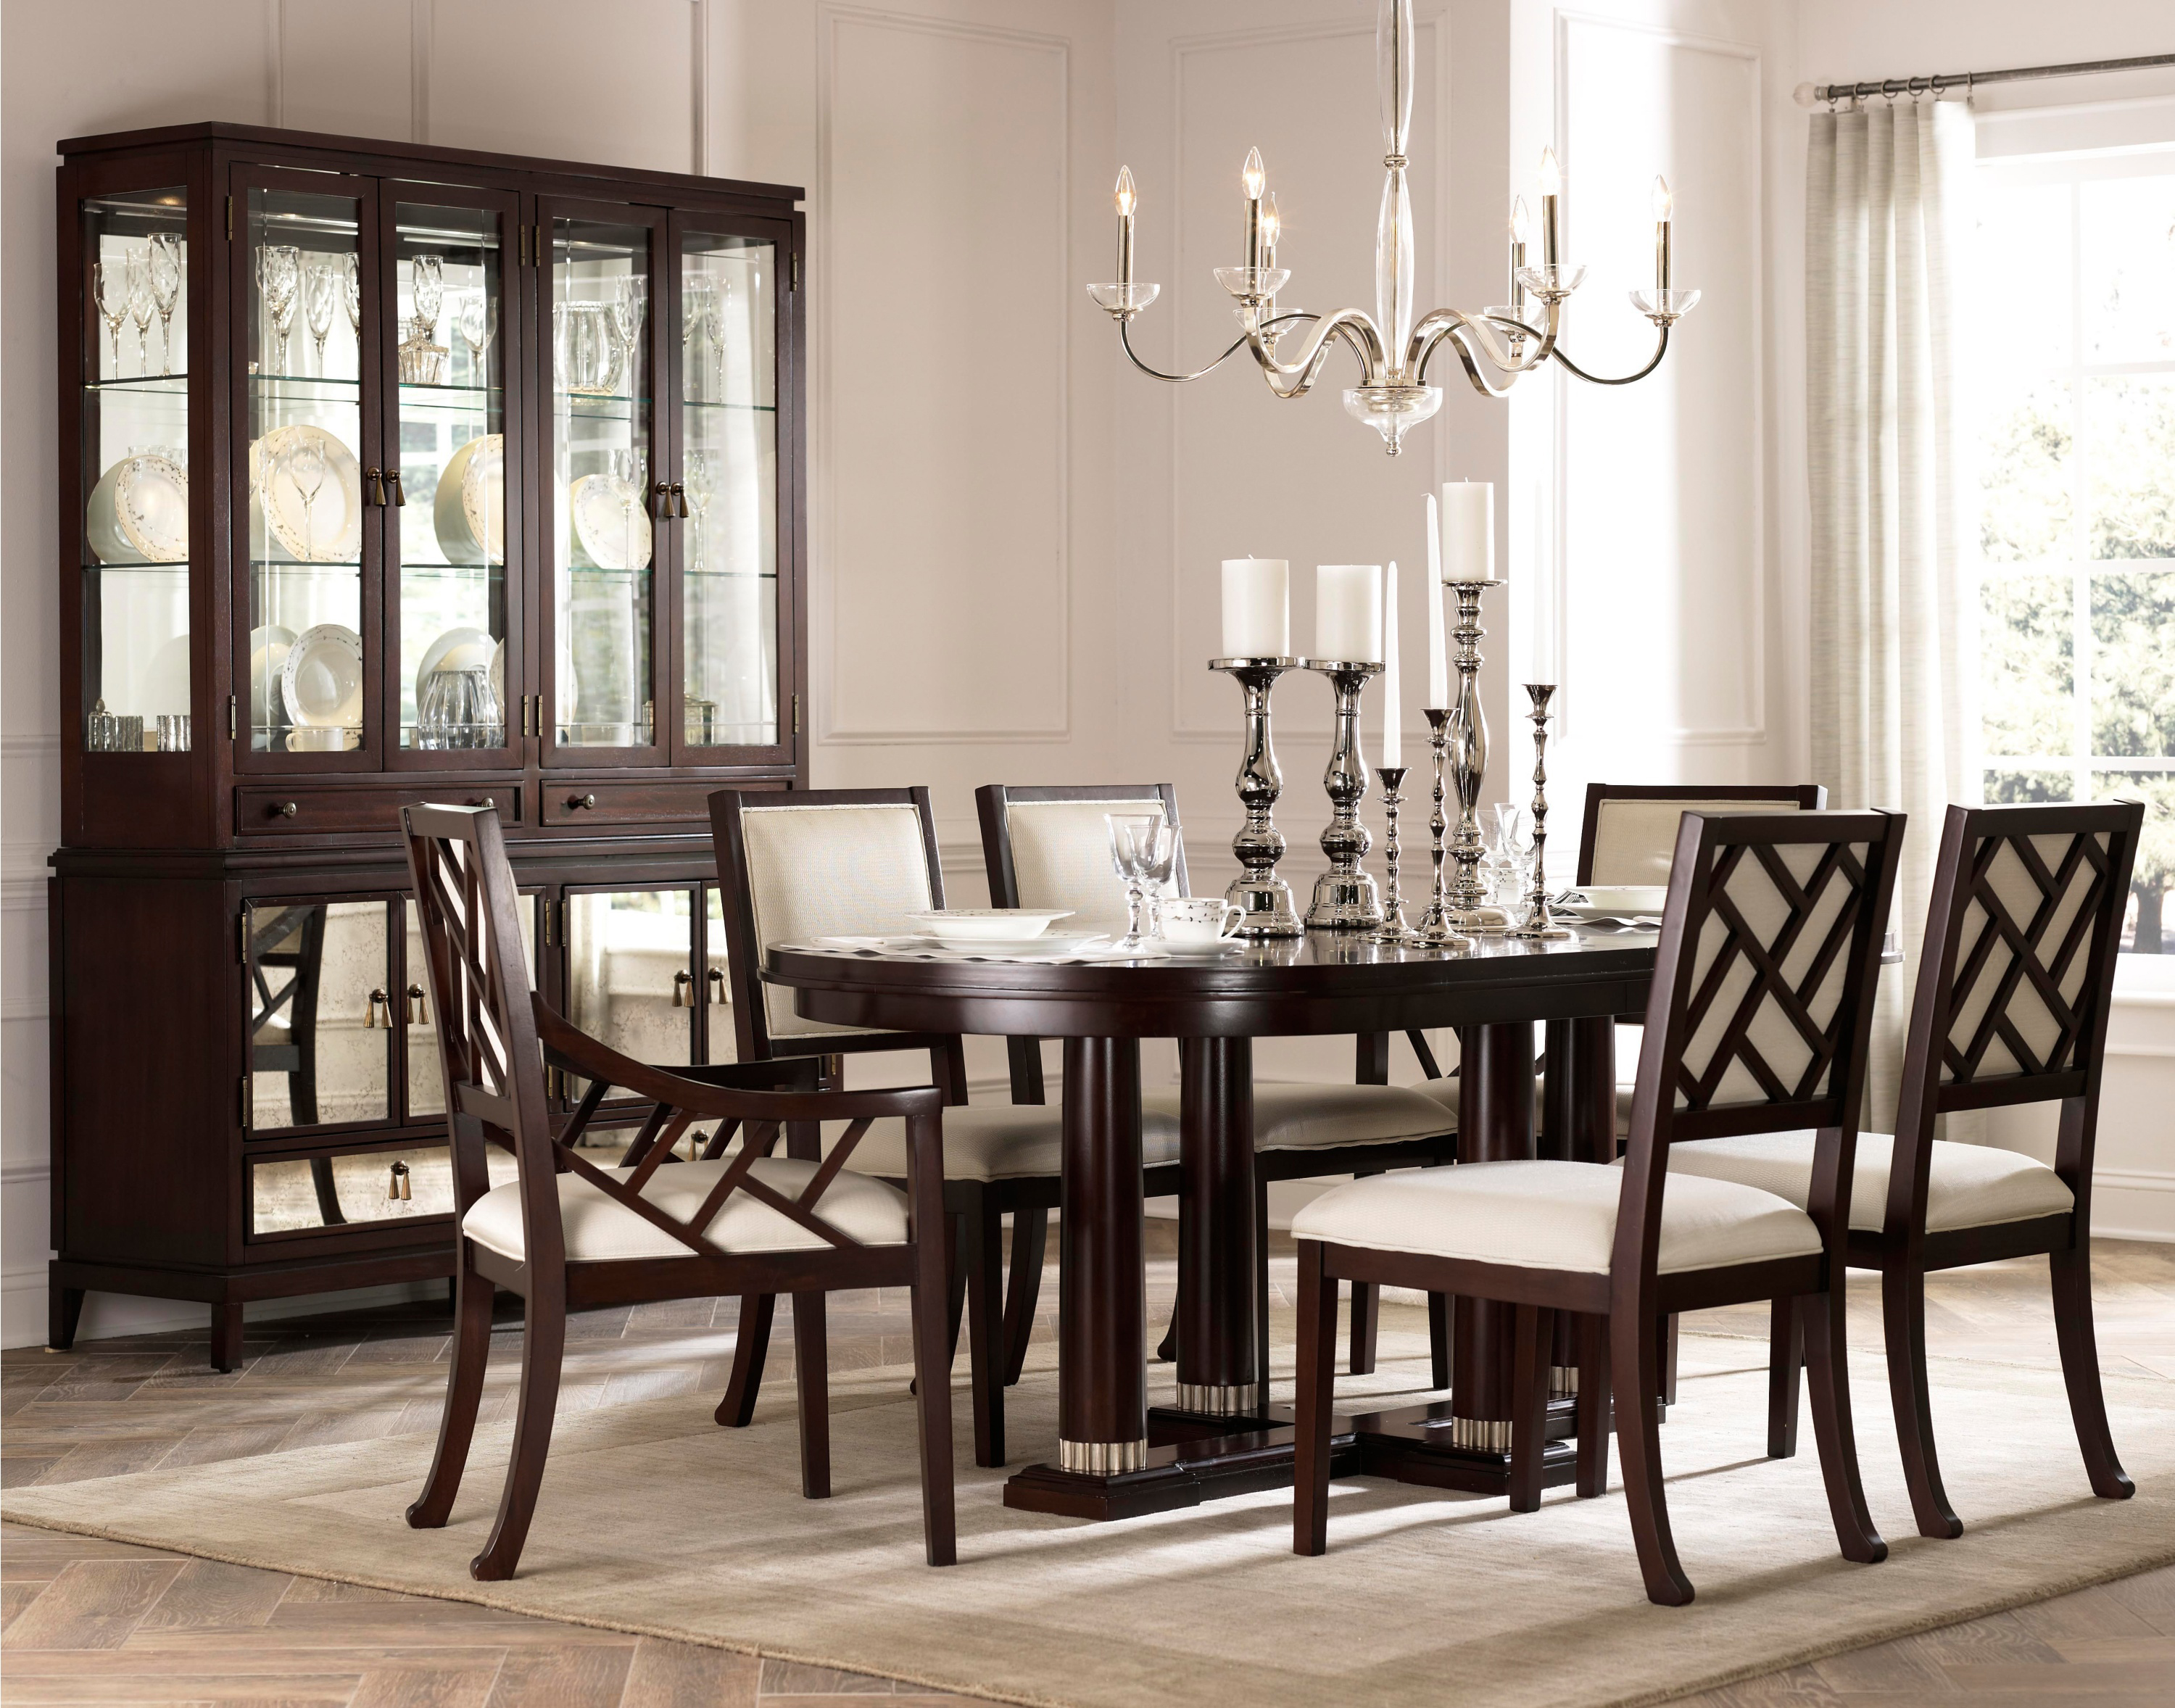 charming dining chairs in brown wooden with white seat and wooden dining table by broyhill furniture on white rug for dining room decor ideas